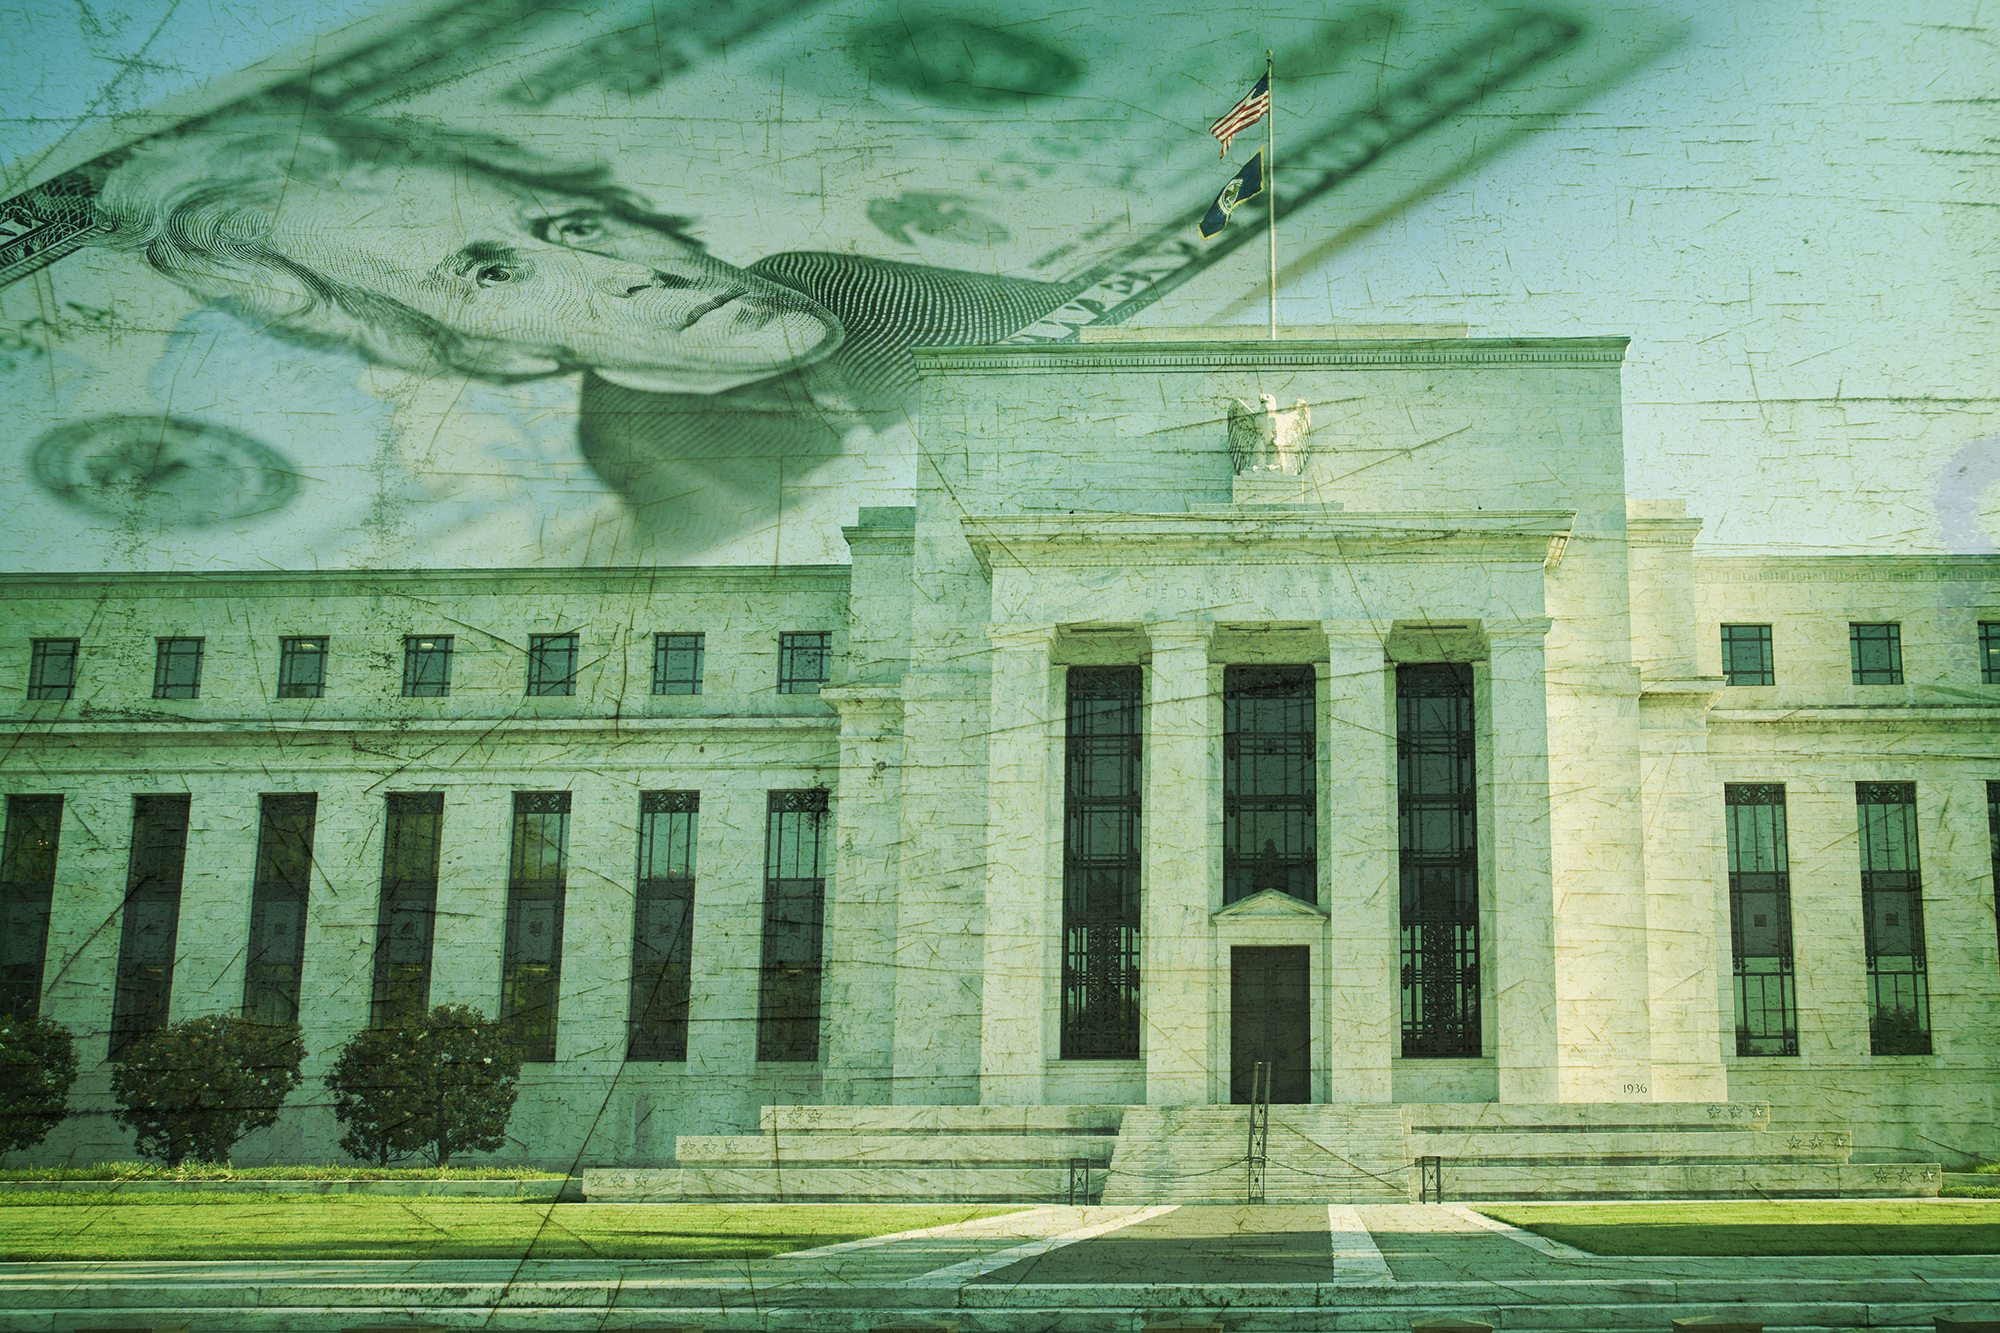 a-brady-bond-solution-for-america's-economic-crisis-and-unpayable-corporate-debt-–-global-research